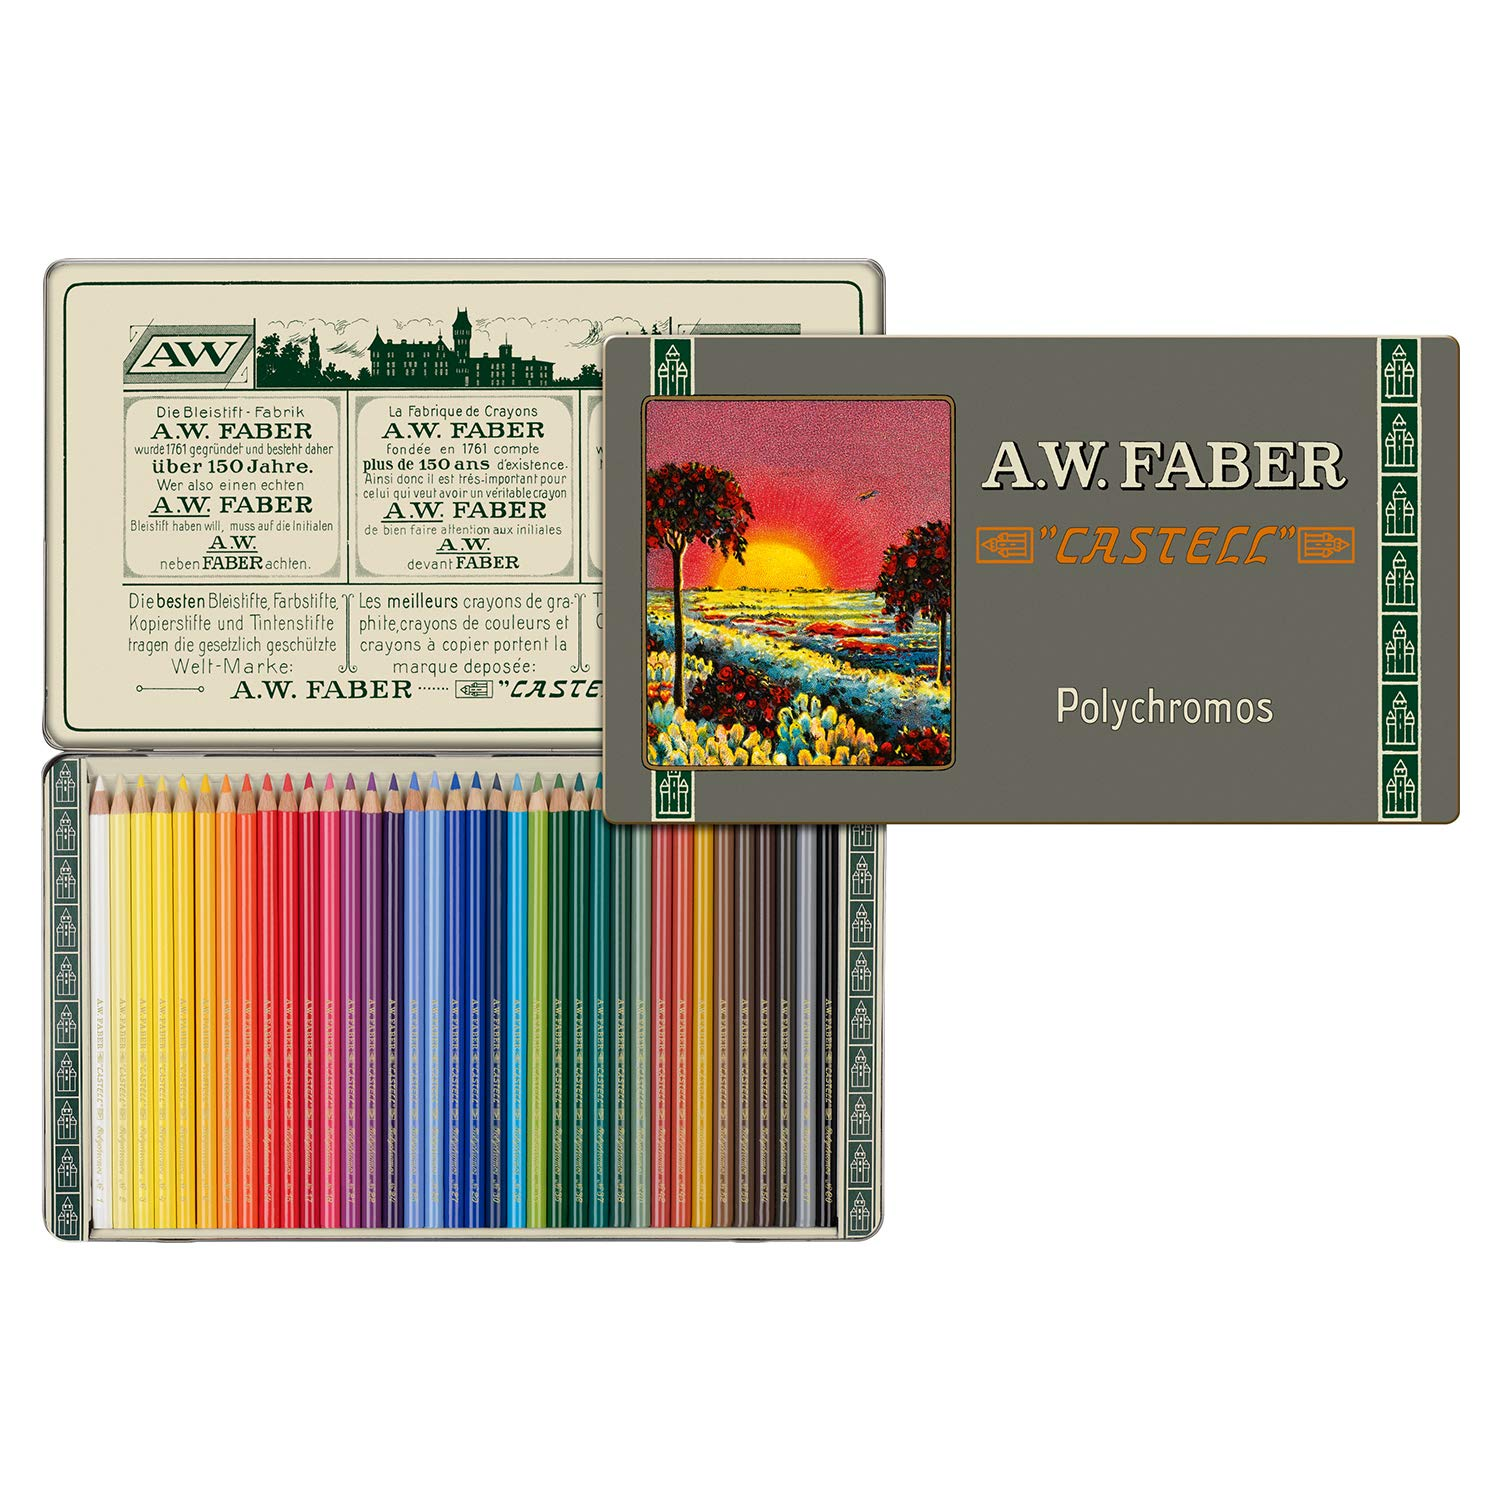 Faber-Castell Polychromos 111th Anniversary Limited Edition Wood Colored Pencil Tin - 36 Colors by Faber-Castell